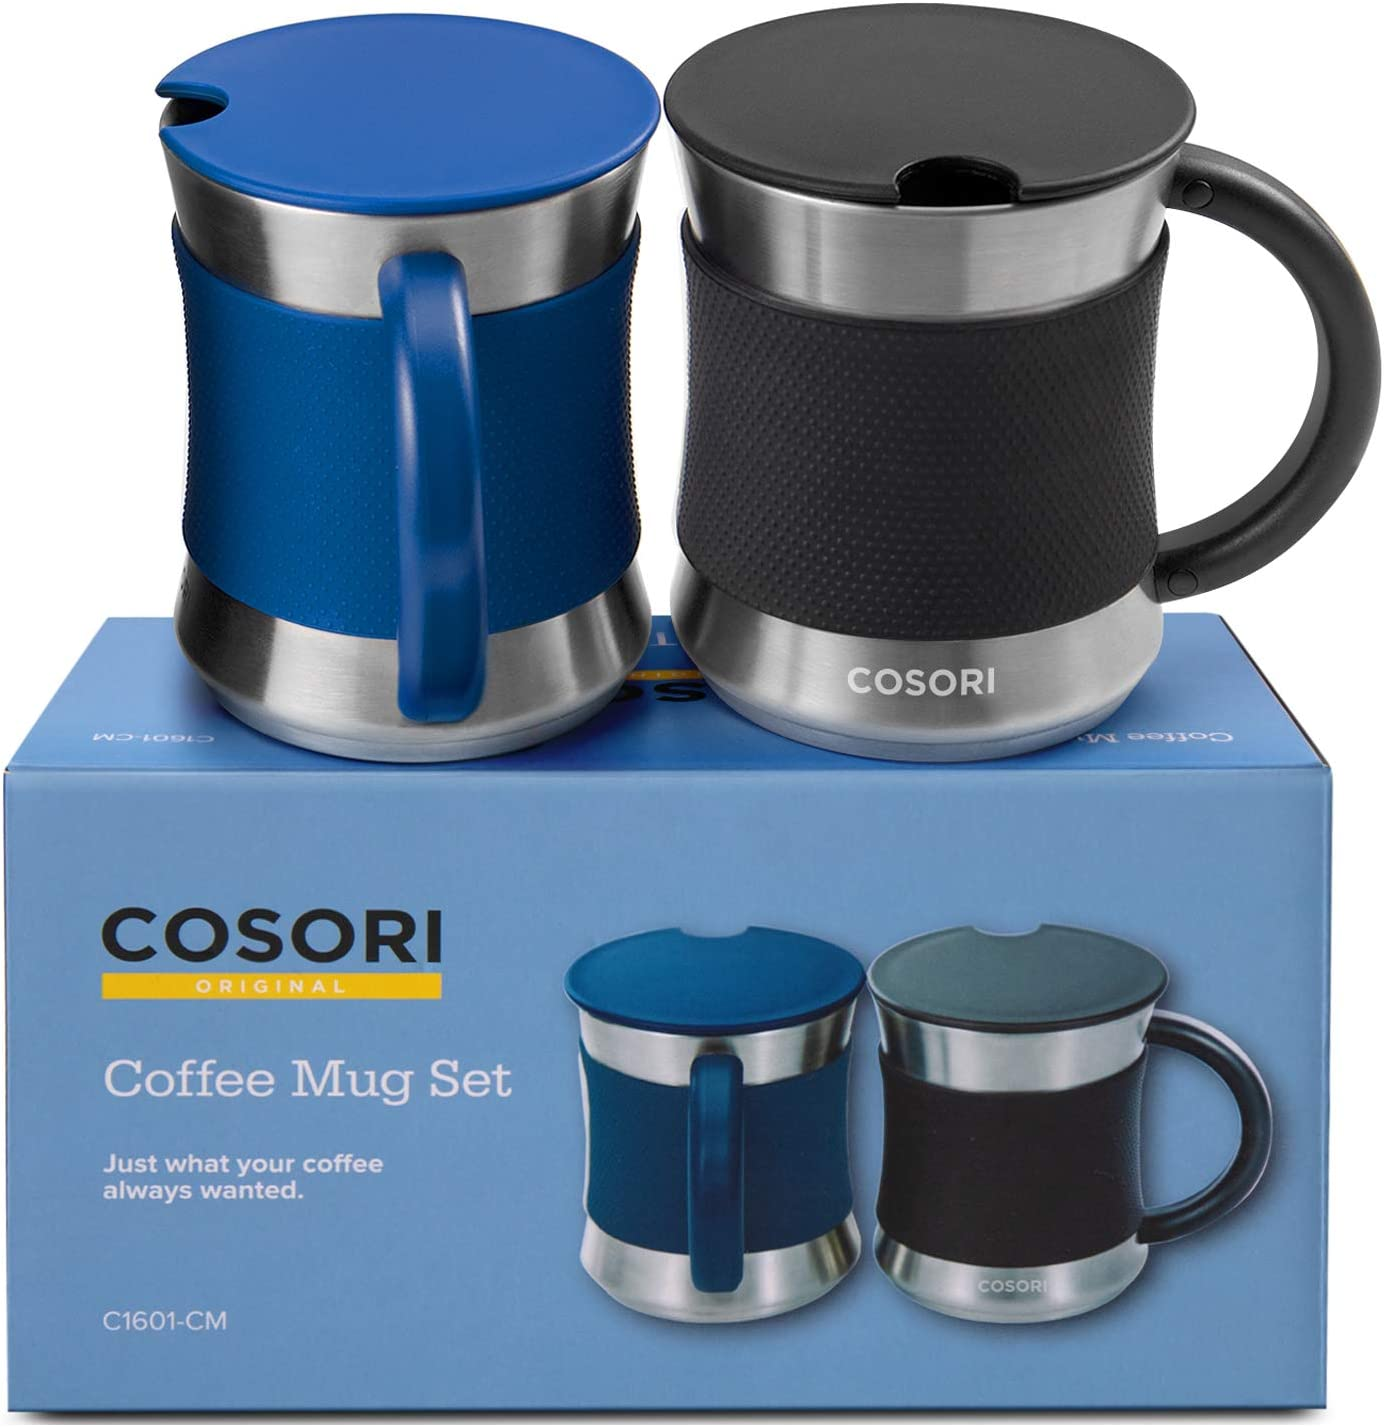 Amazon Com Cosori Coffee Mug With Lids Set Of 2 Stainless Steel Cups With Heat Resistant Handle Slip Resistant Sleeve 17 Oz Best Match W Mug Warmer For Coffee Tea Water Cocoa Milk C1601 Cm Black Blue Kitchen